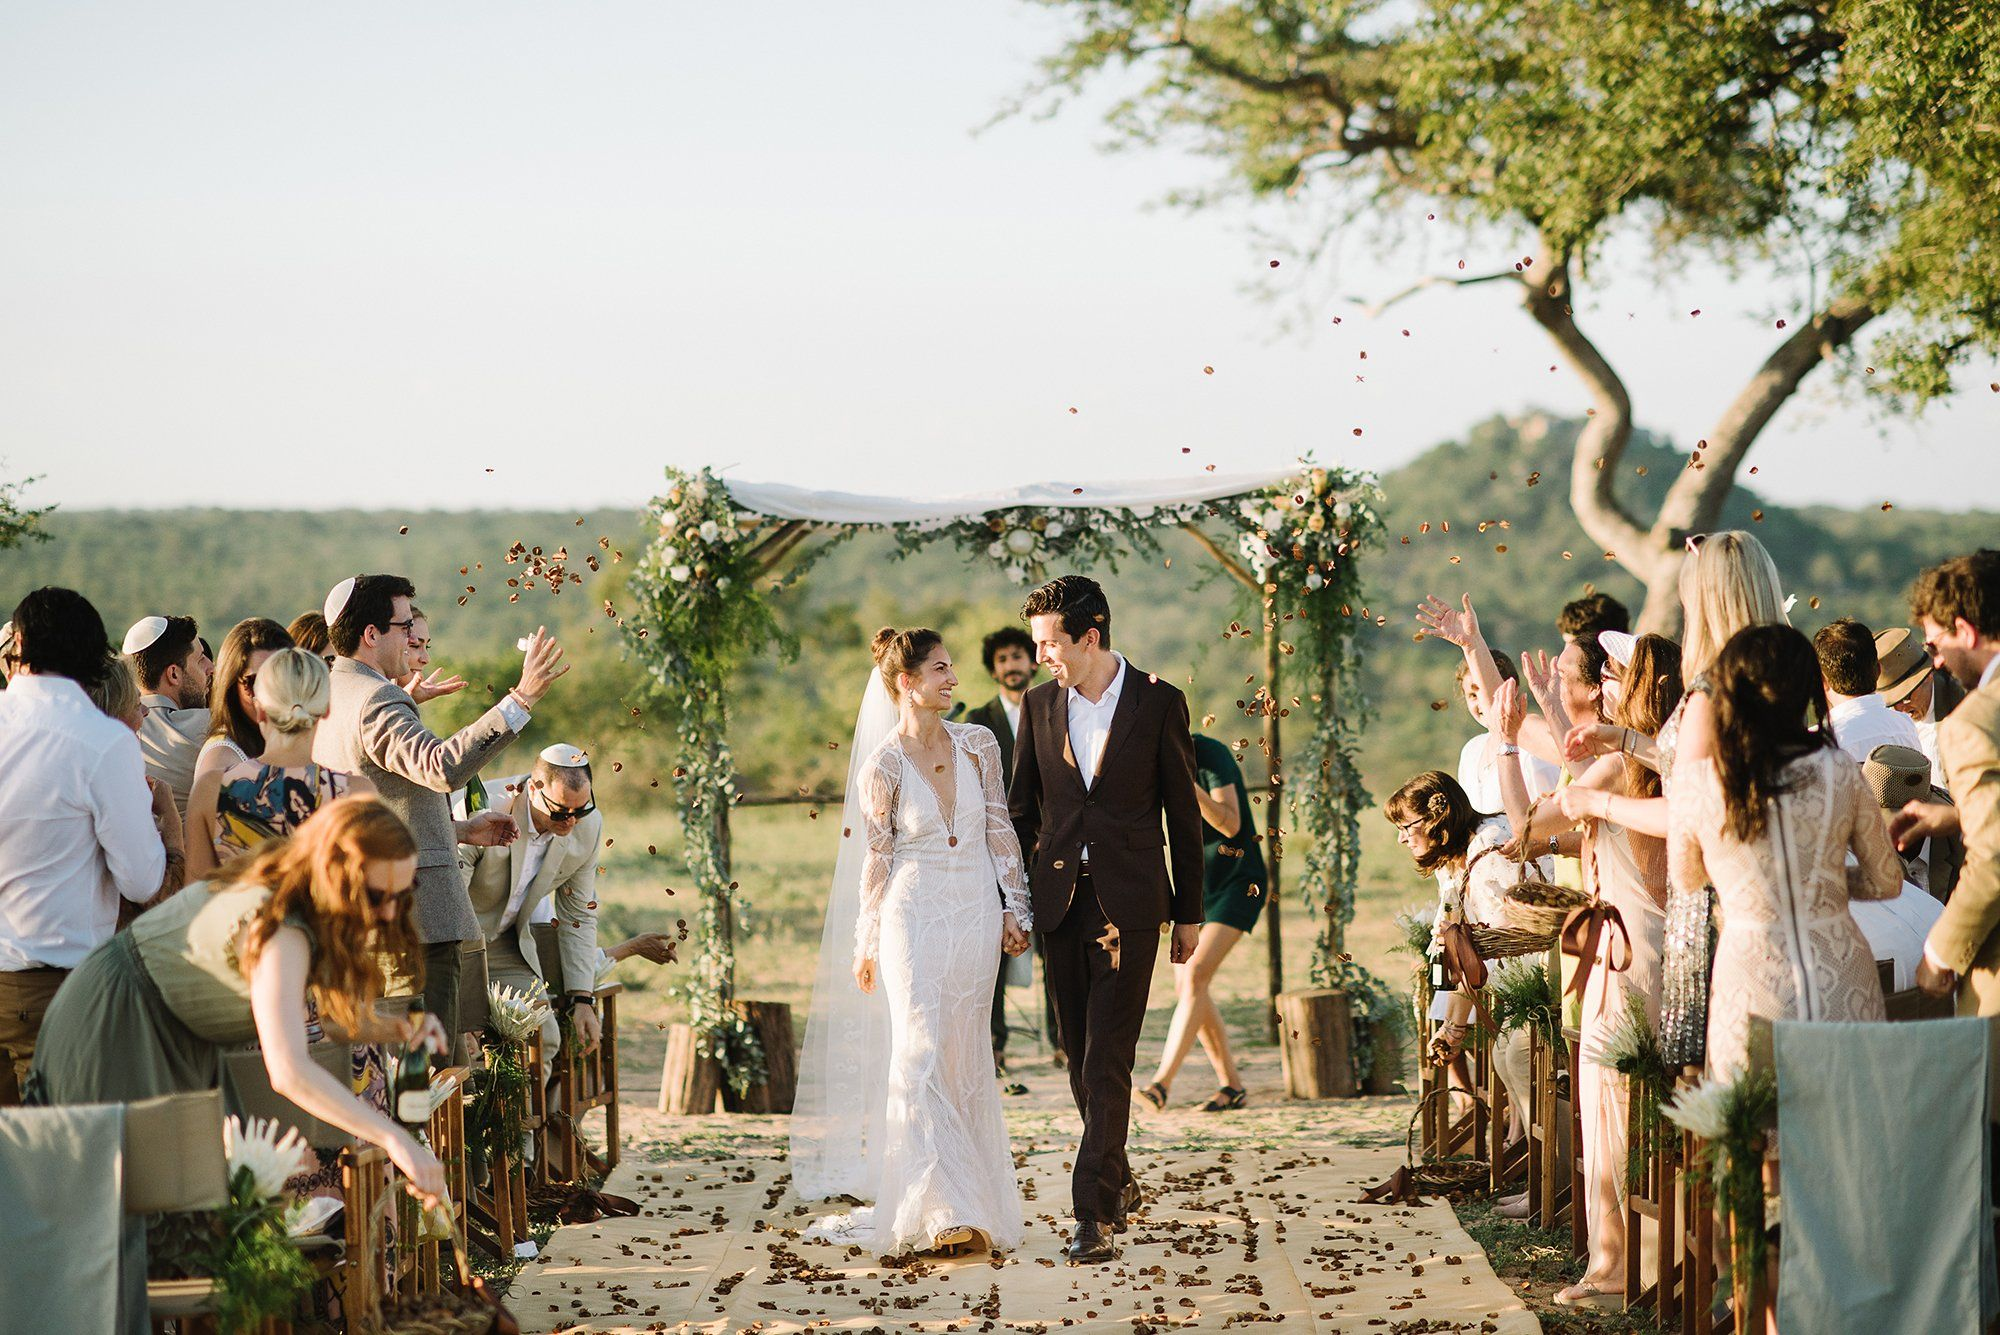 With family and friends looking on, the couple exchanged vows they wrote…